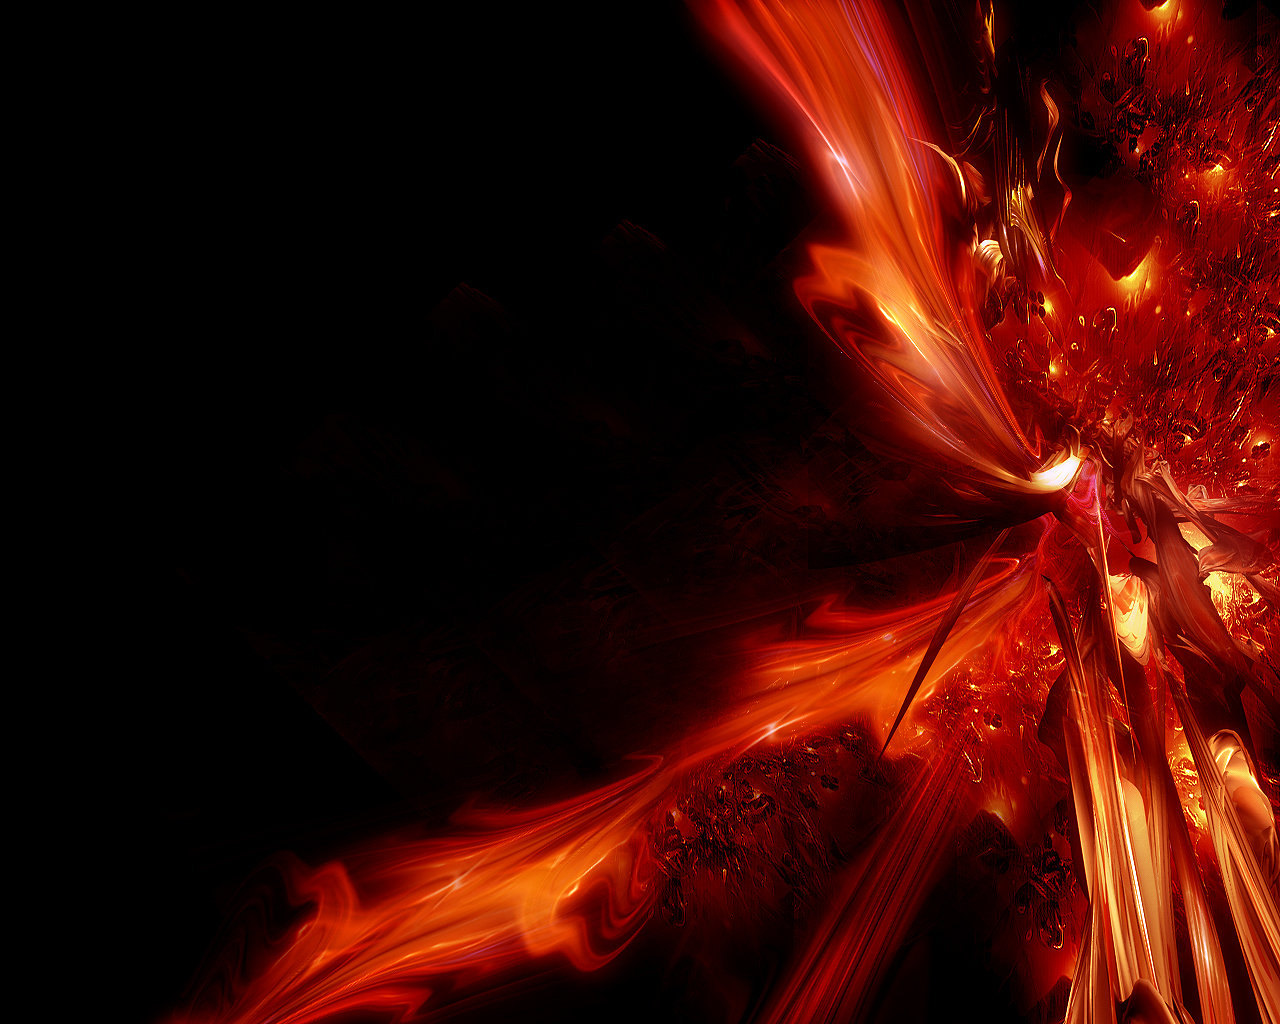 Free download Red background ID:445476 hd 1280x1024 for desktop